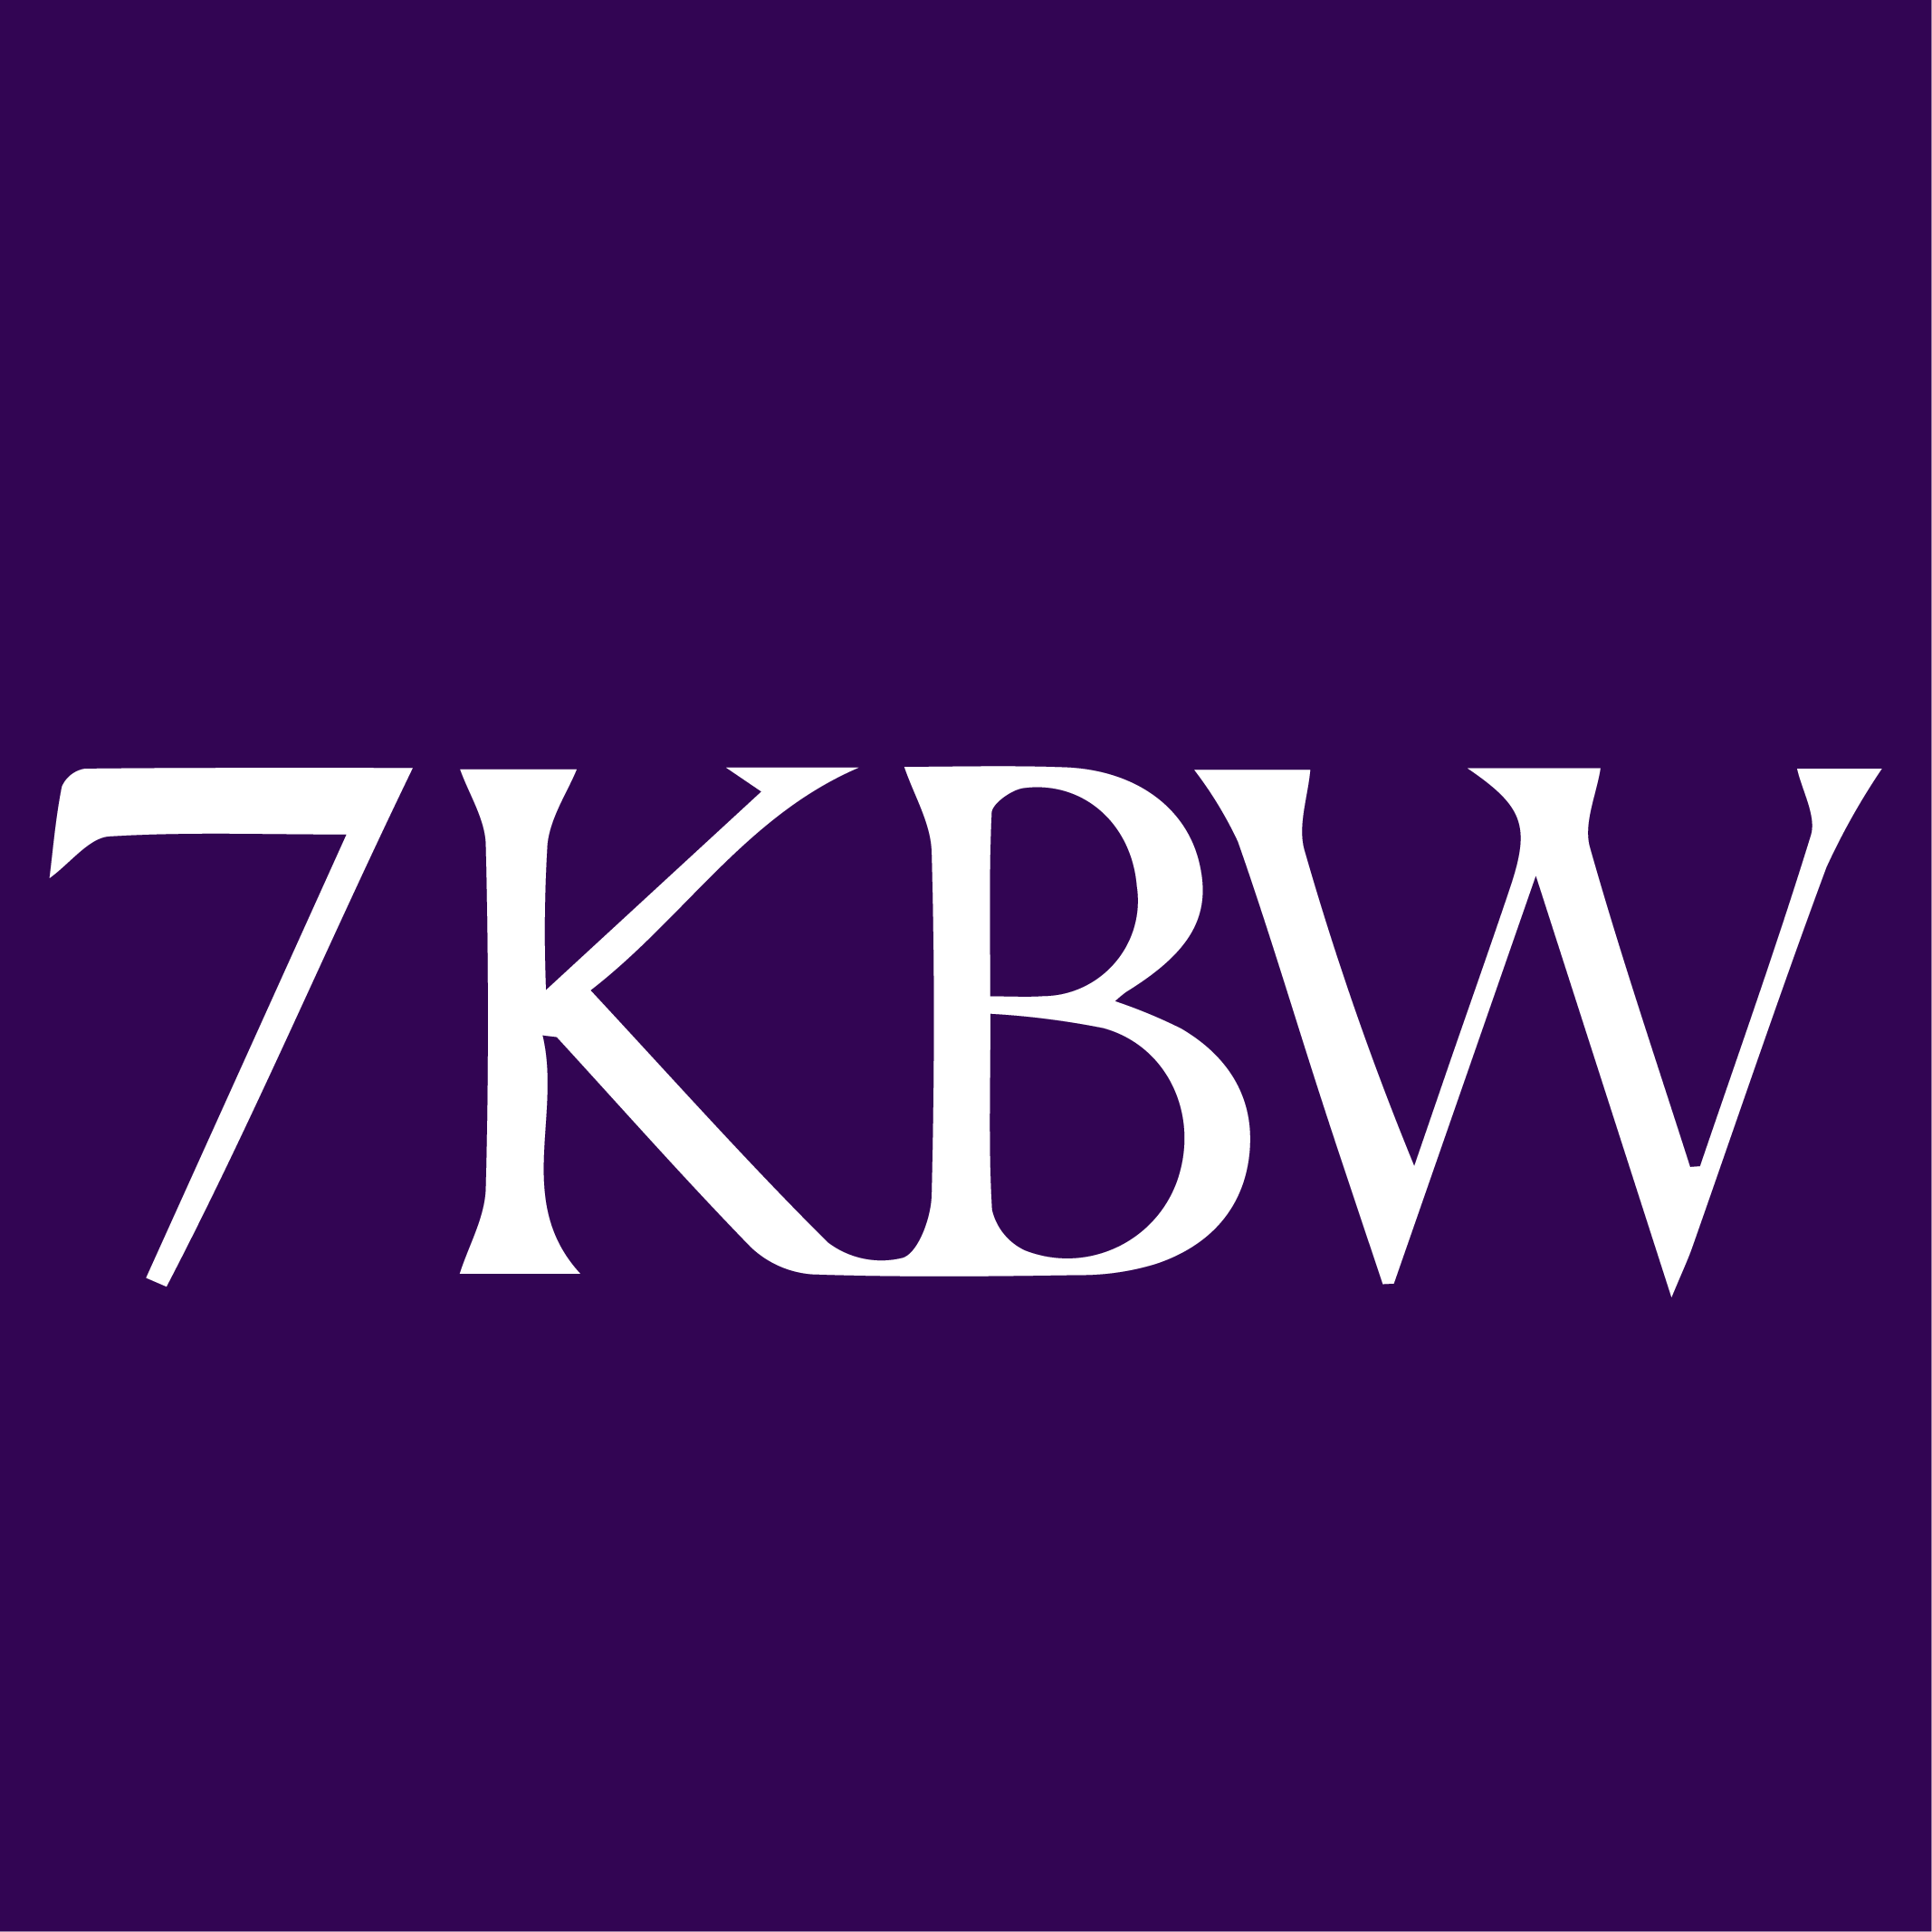 7KBW features in The Lawyer's Top 20 Cases of 2020